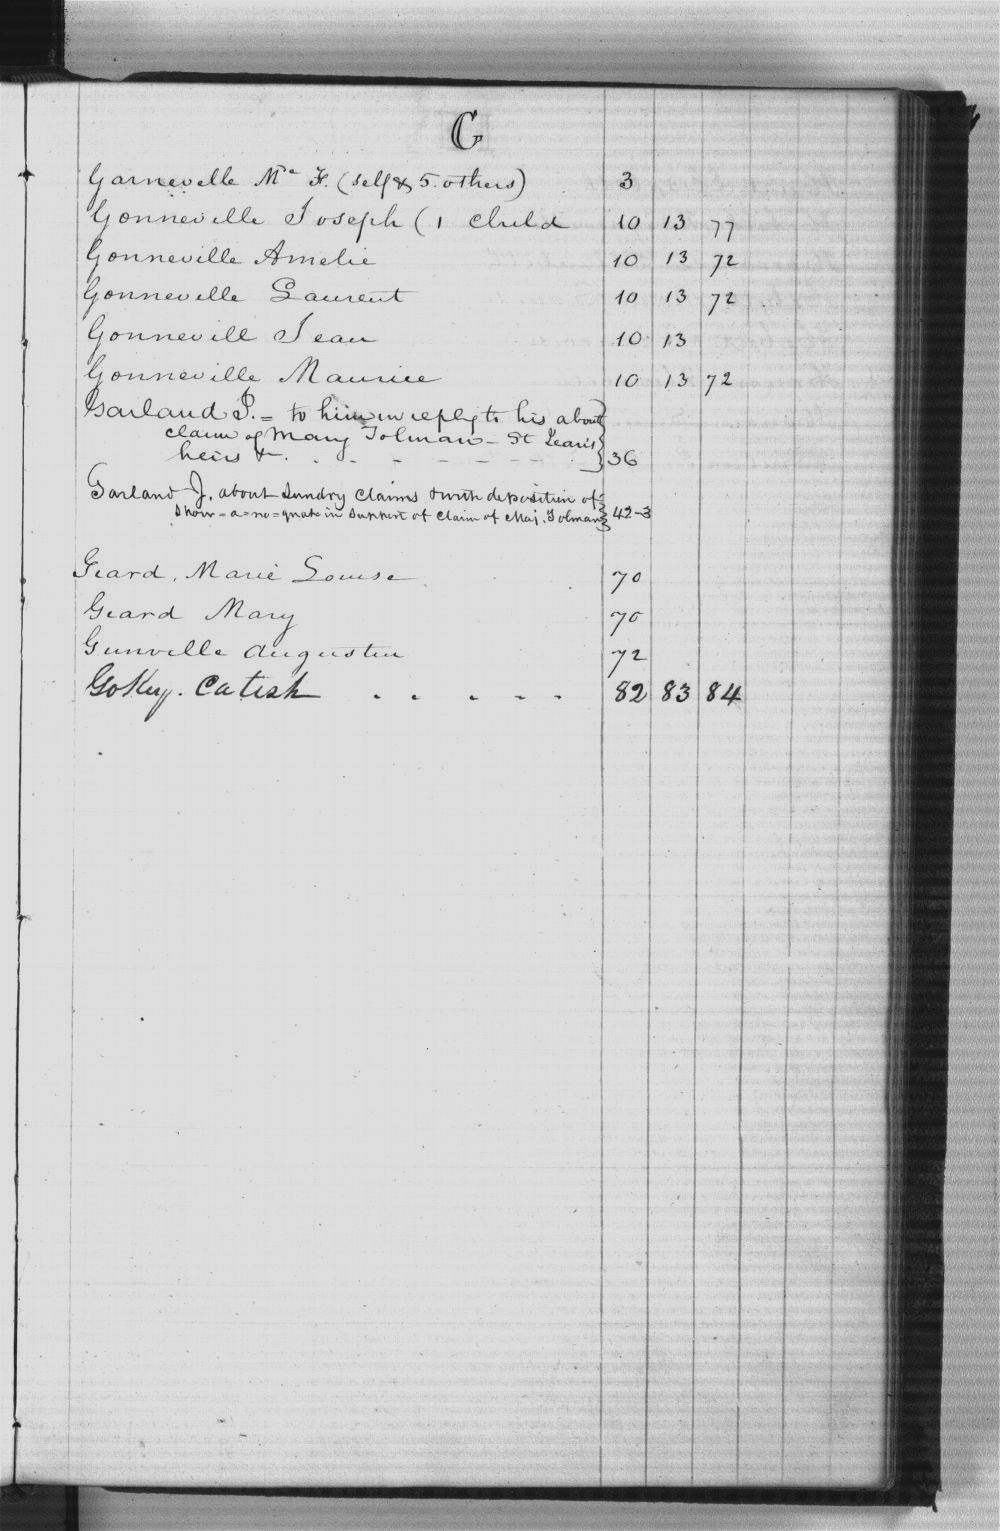 United States Office of Indian Affairs, Central Superintendency, St. Louis, Missouri. Volume 32, Claims under 1824 Sac and Fox Treaty - Index G